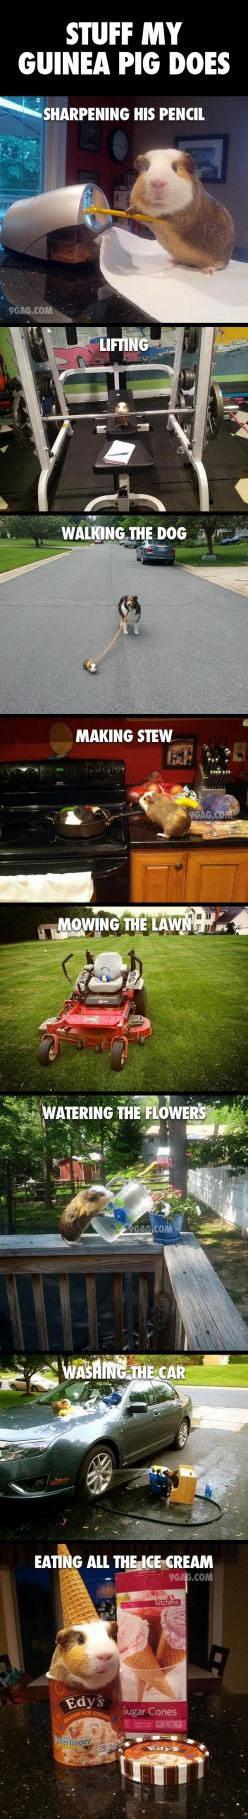 Stuff My Guinea Pig Does; 'Cause everyone has a Guinea pig that does cool stuff like this! Thank you @Sherri Levek Large King !!: Guineapigs, Animals, Stuff Guinea, Pet, Humor, So Funny, Guinea Pigs